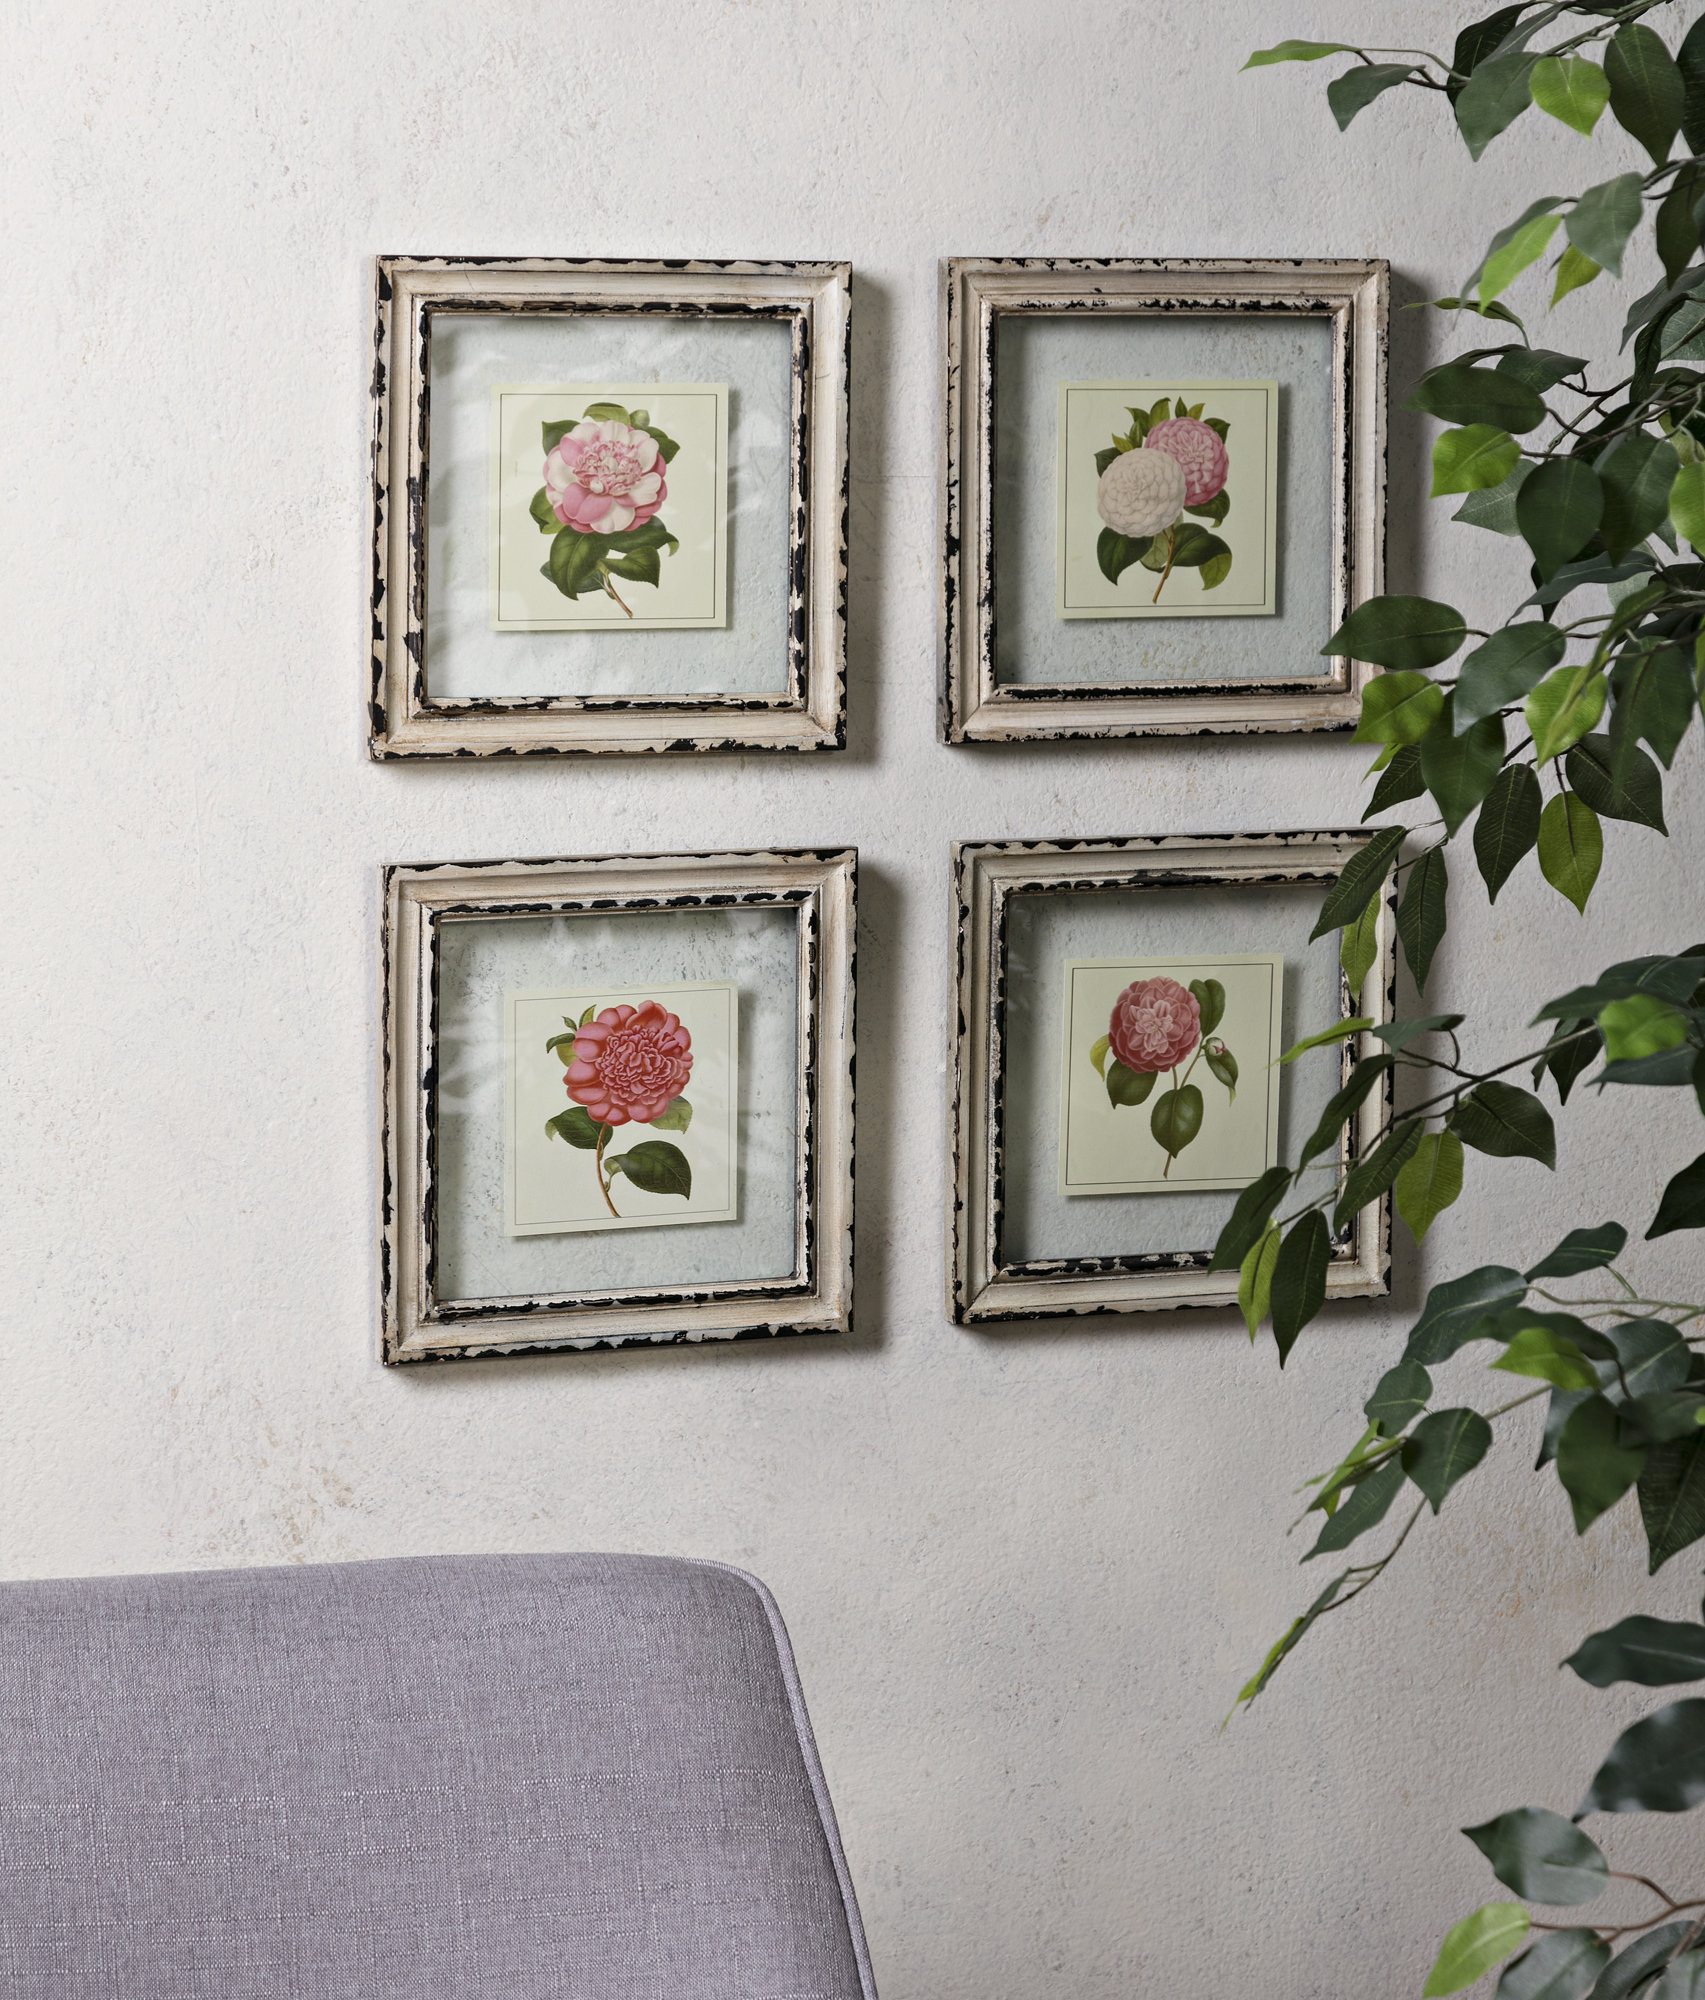 Watercolor Floral Wall Art | Wayfair throughout Floral Wreath Wood Framed Wall Decor (Image 28 of 30)